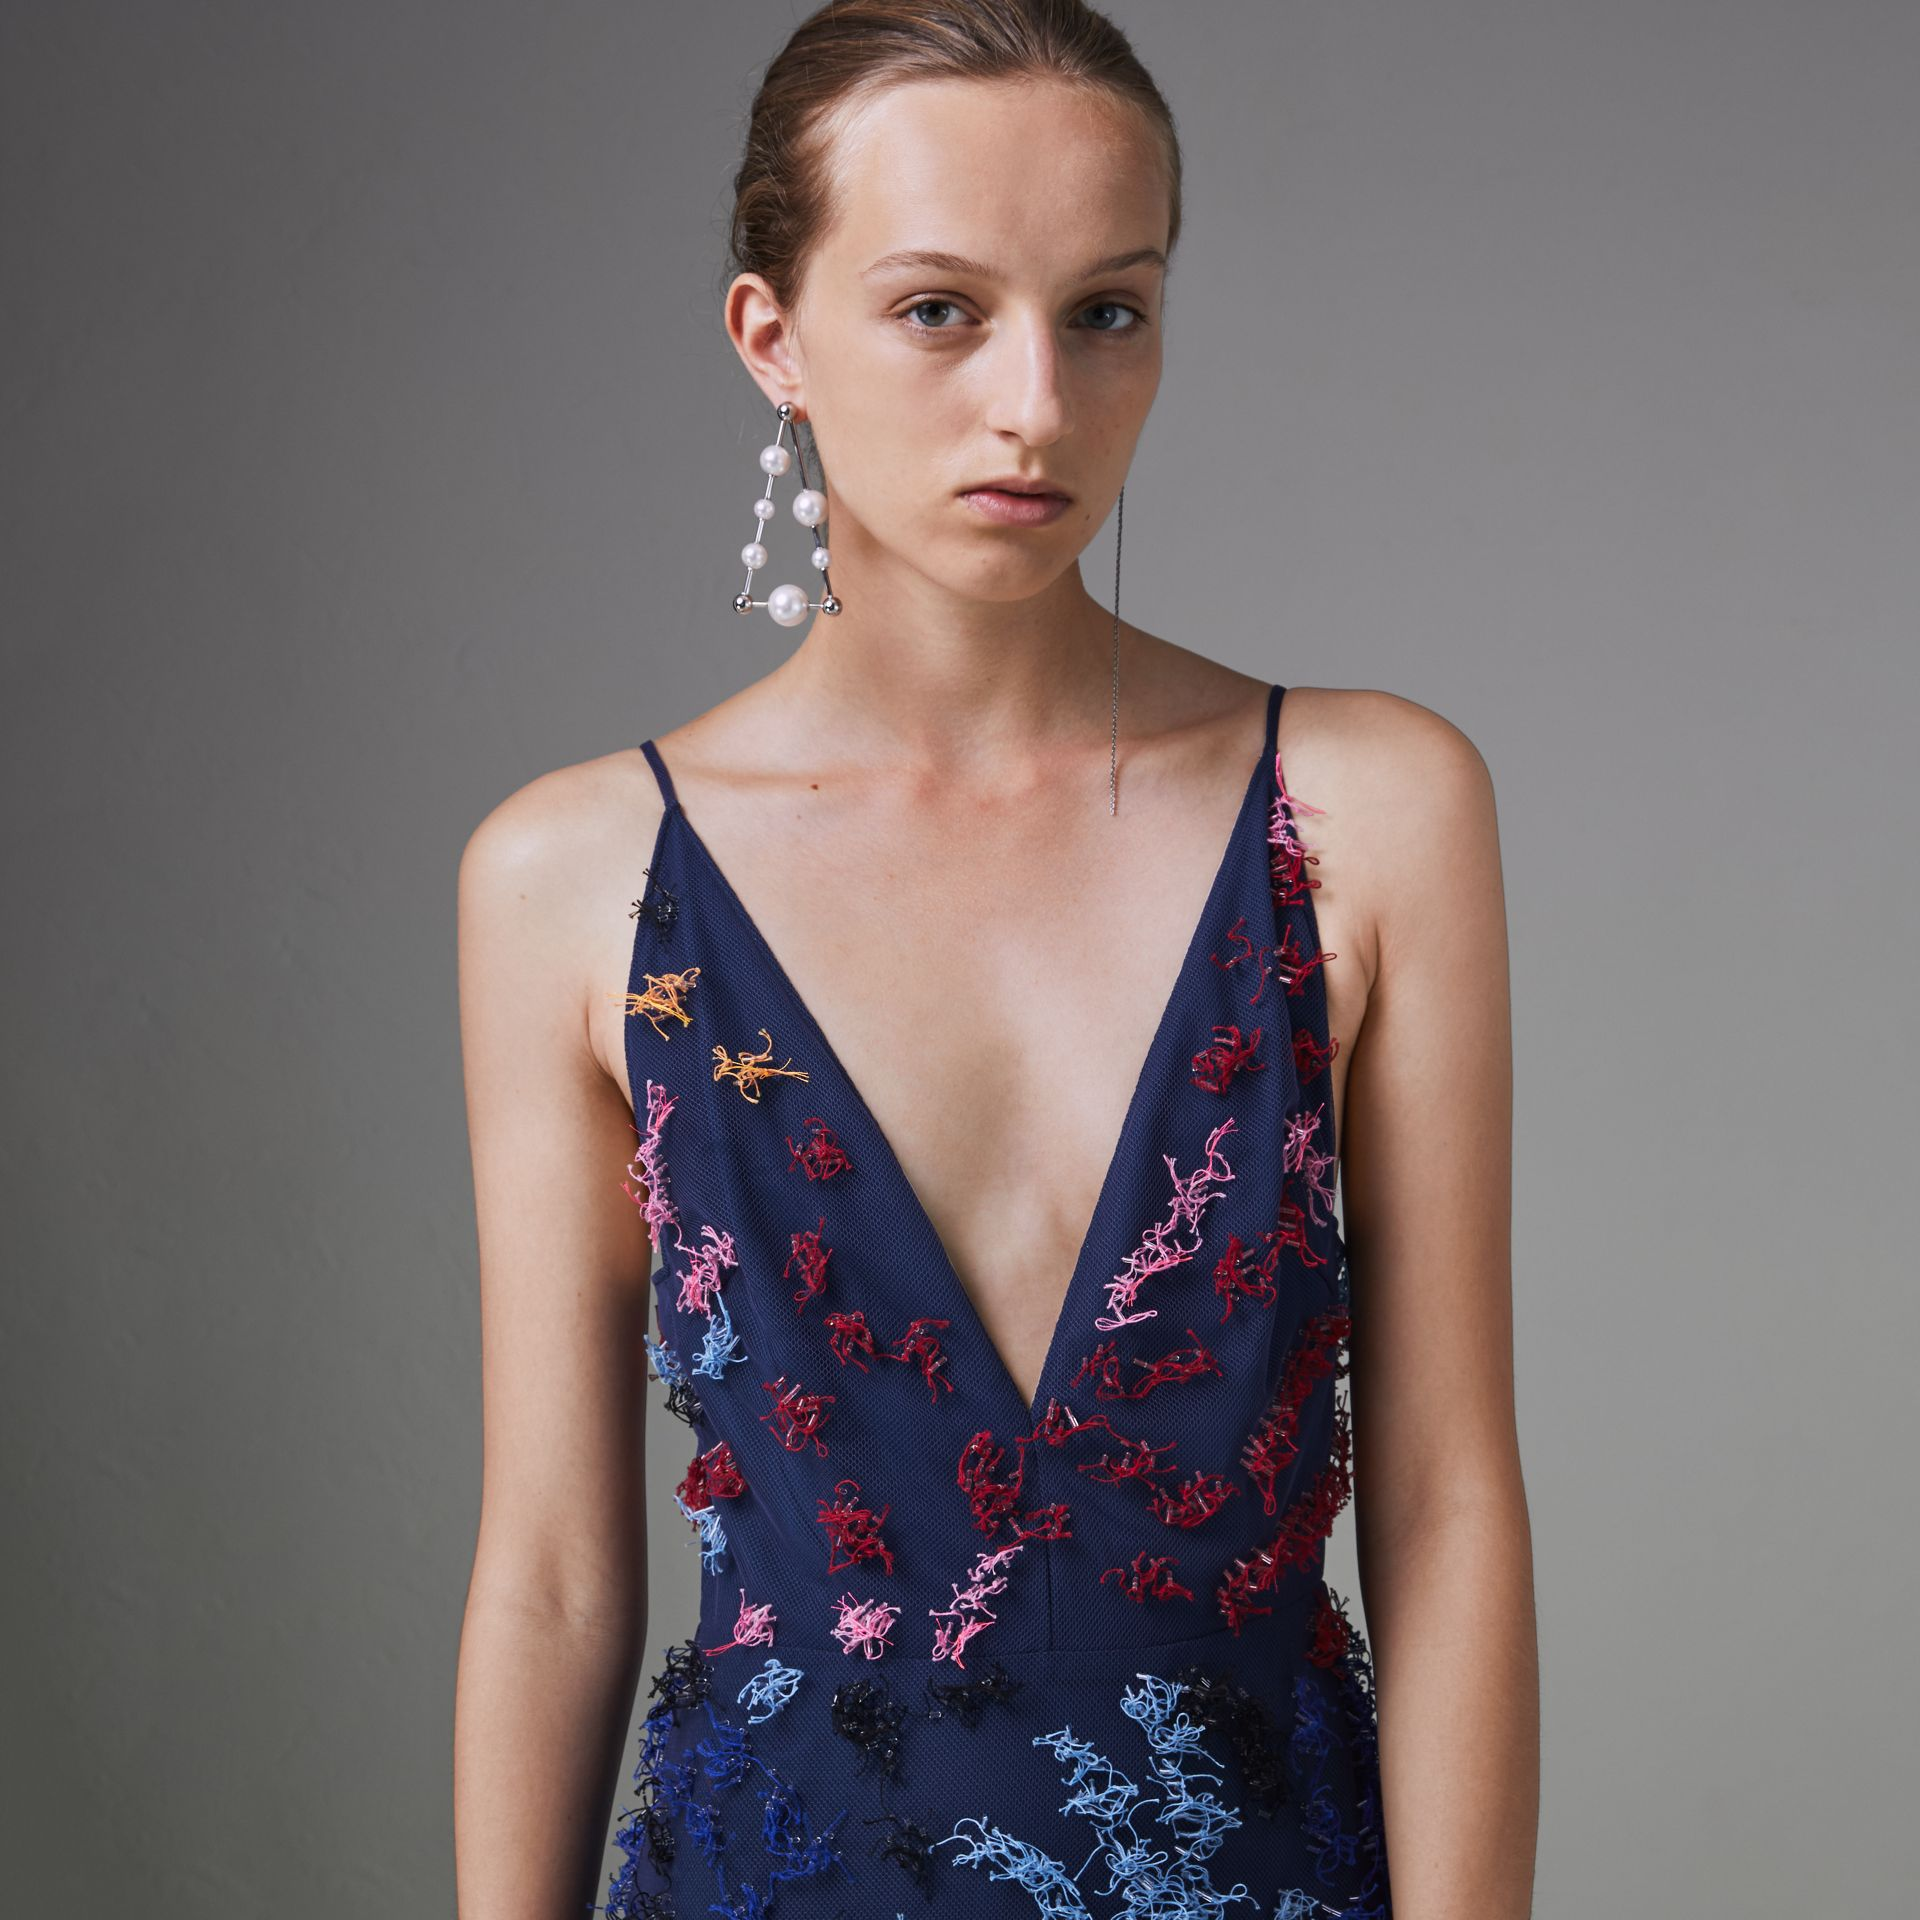 Hand-beaded Sleeveless Dress in Multi -bright Pink - Women | Burberry Singapore - gallery image 1